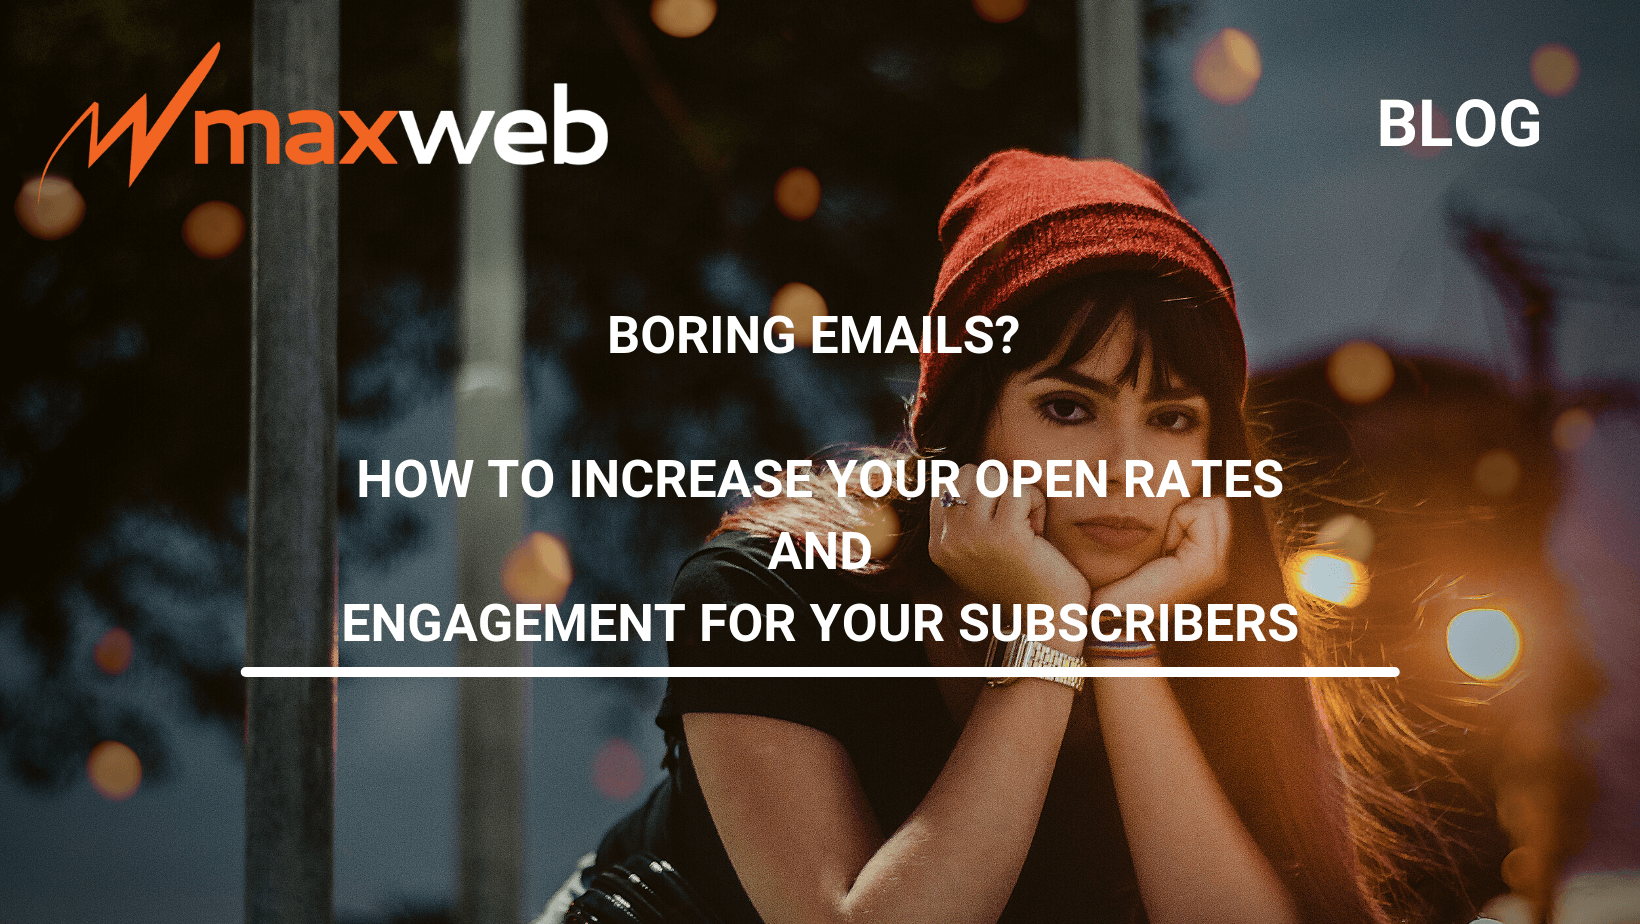 Boring Emails? How To Increase Your Open Rates and Engagement for Your Subscribers